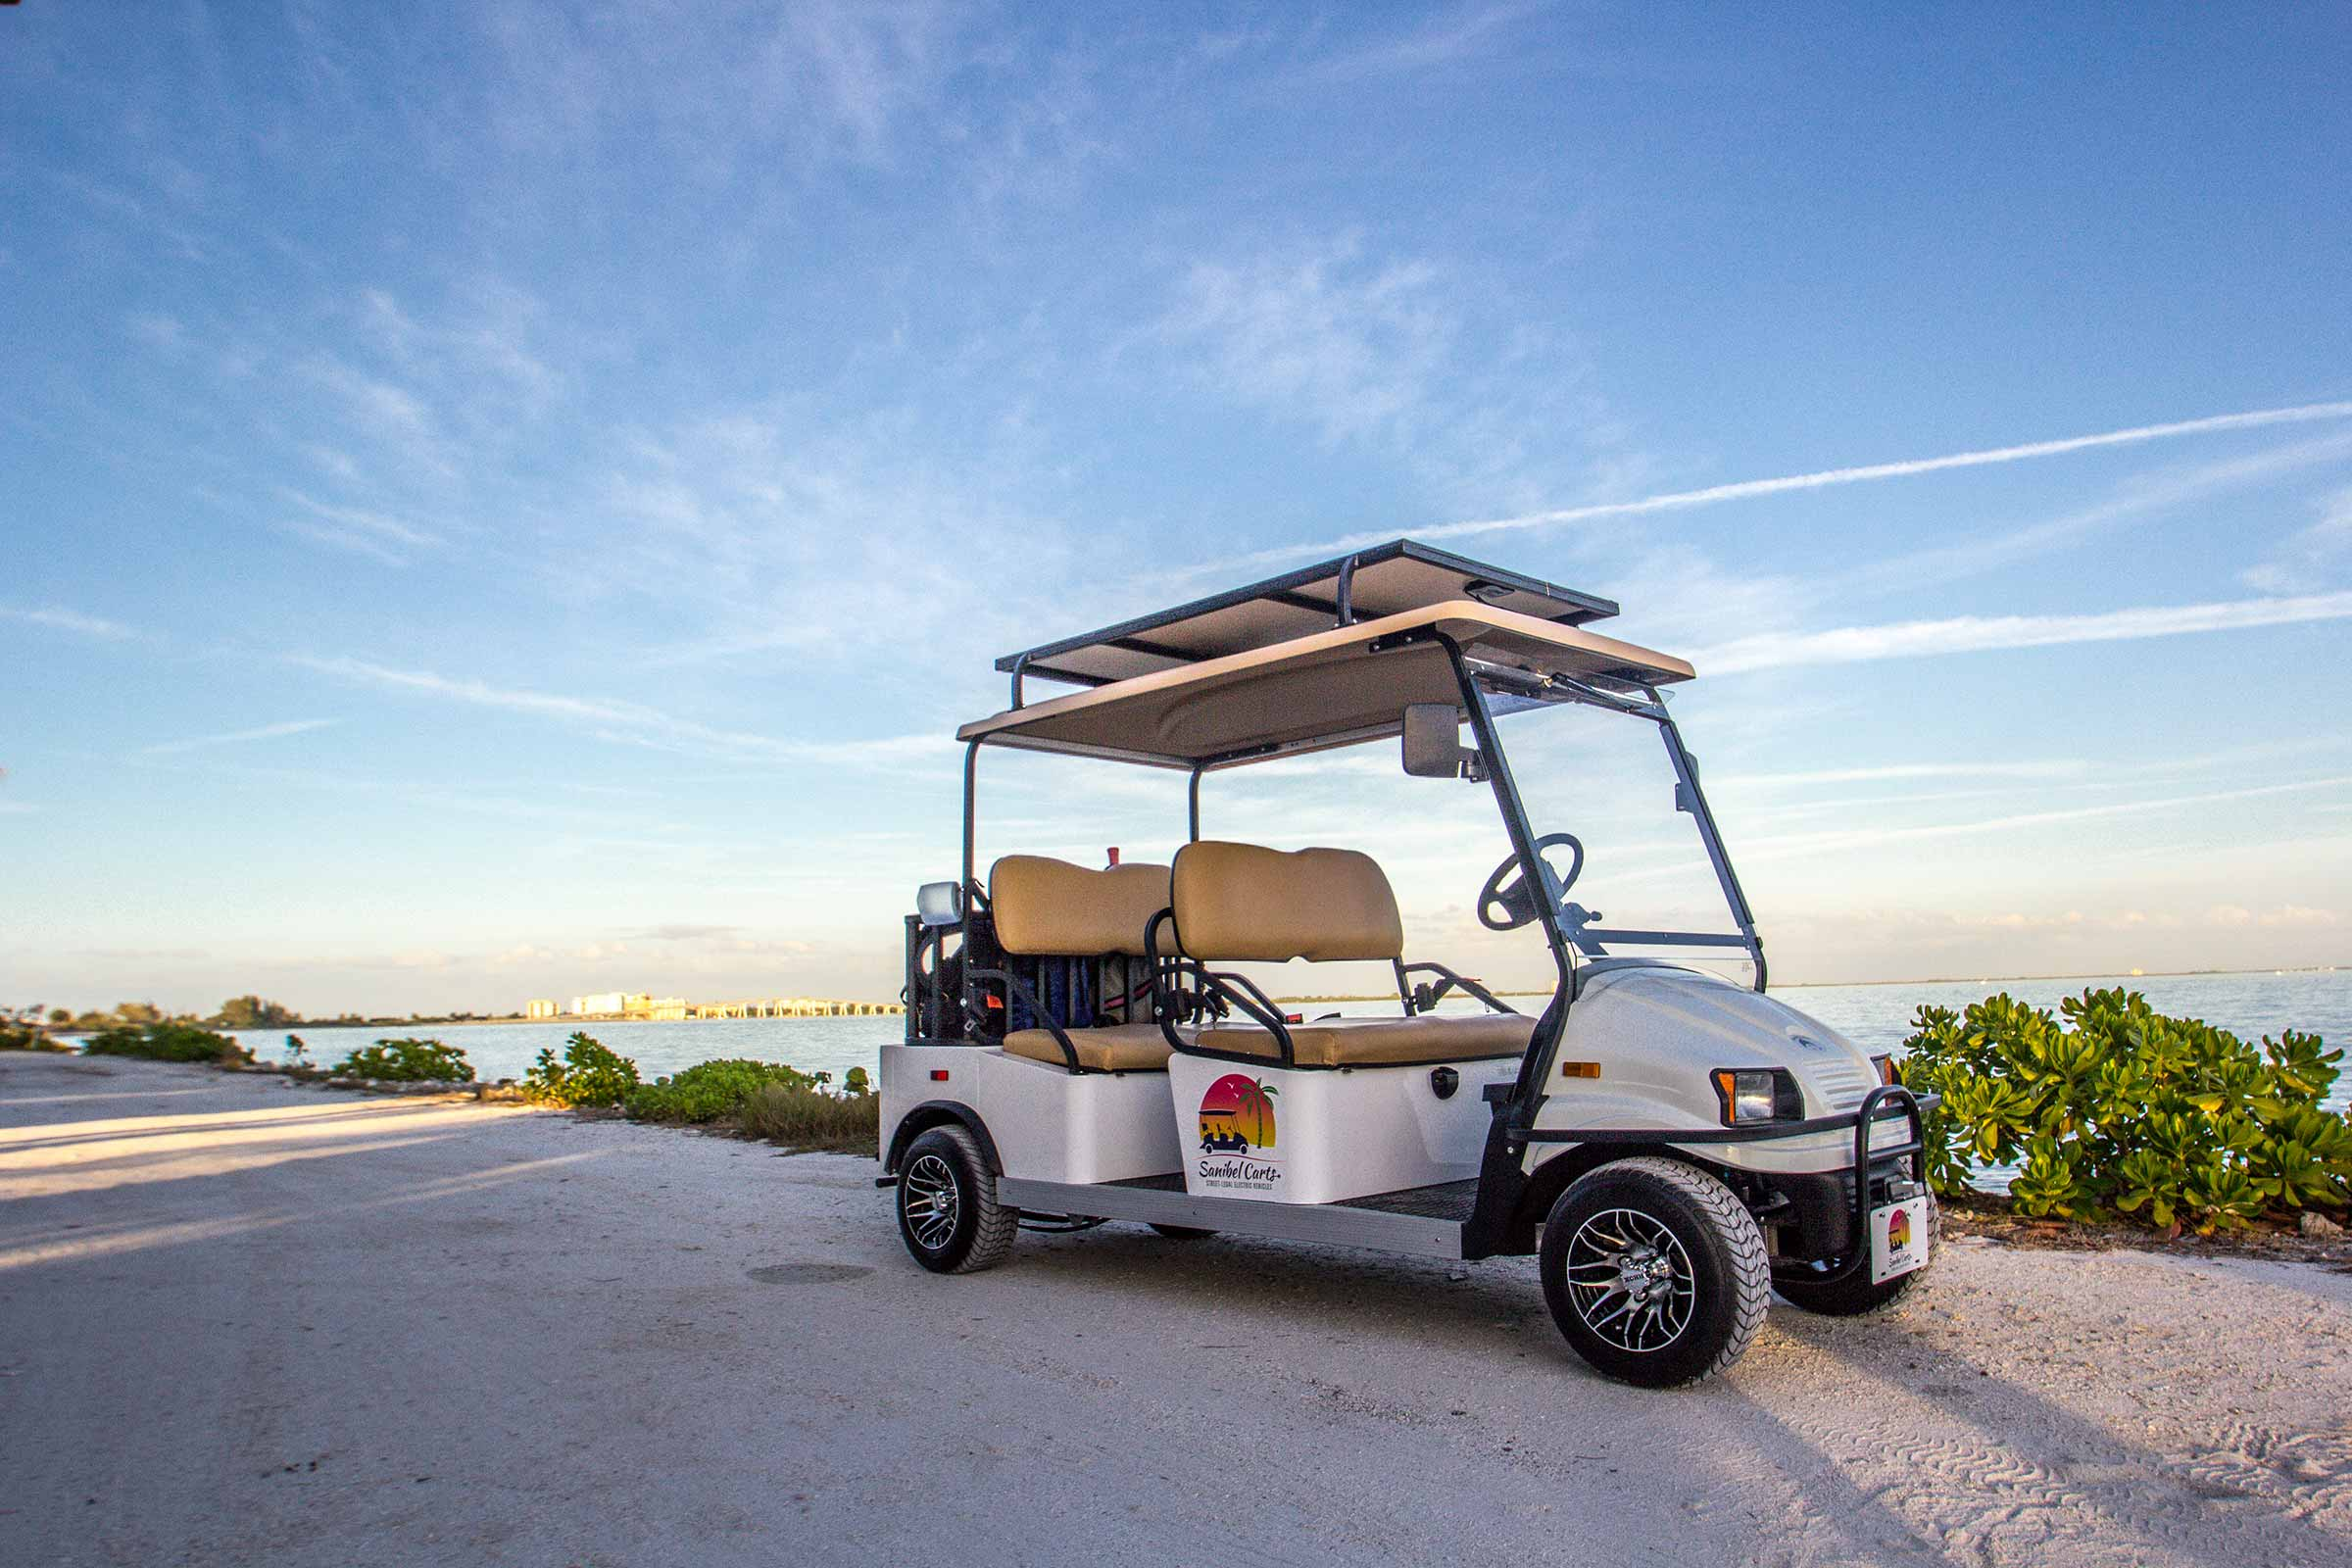 Solar panels on top of a 4-seater Sanibel Cart